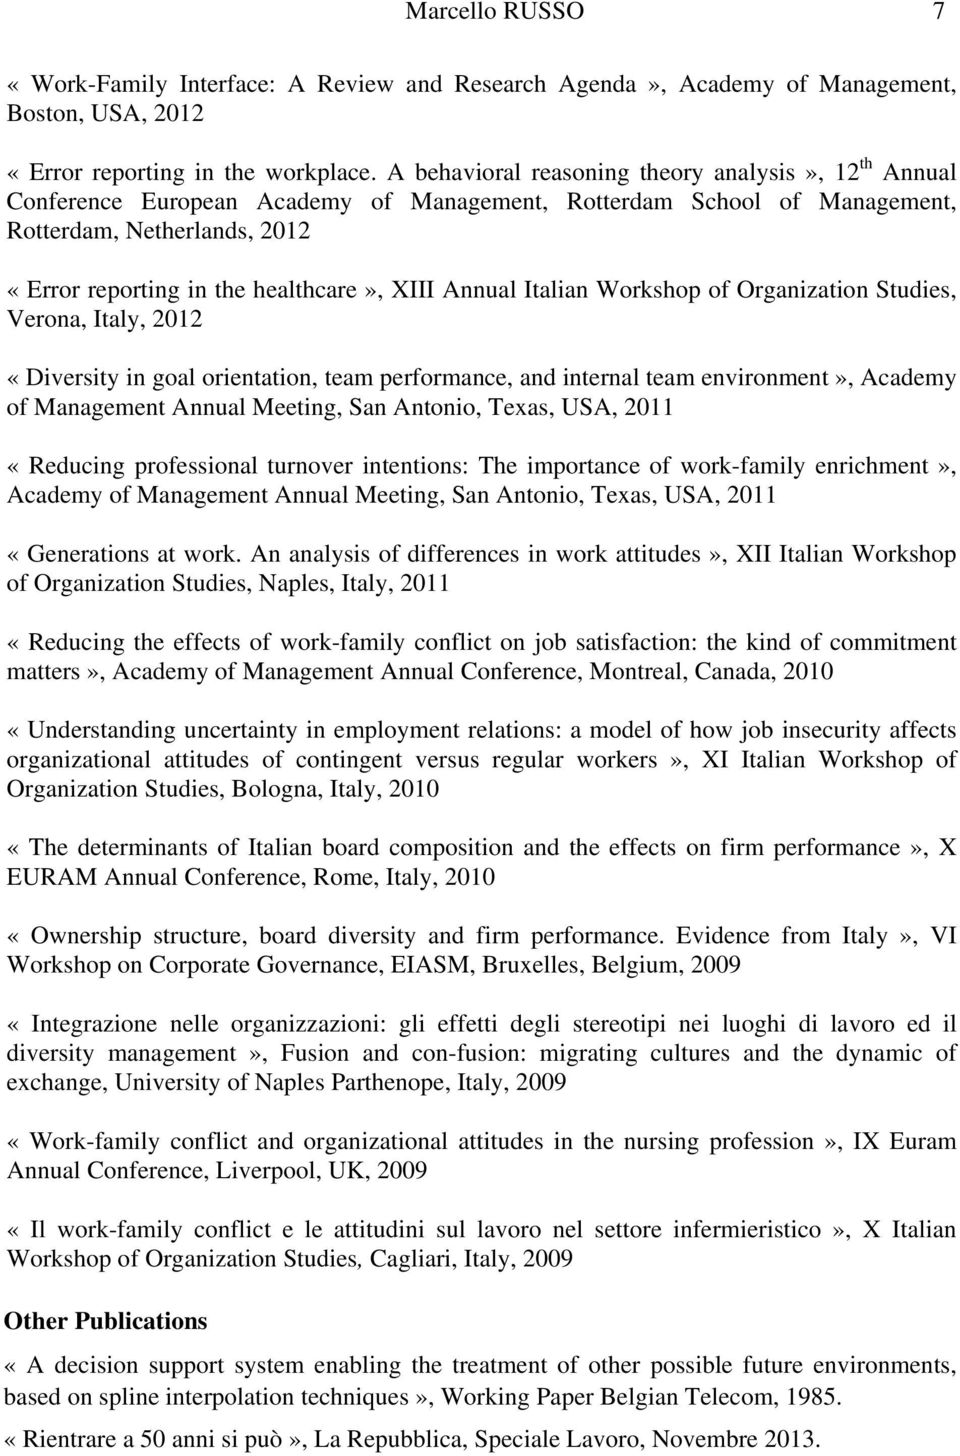 Annual Italian Workshop of Organization Studies, Verona, Italy, 2012 «Diversity in goal orientation, team performance, and internal team environment», Academy of Management Annual Meeting, San